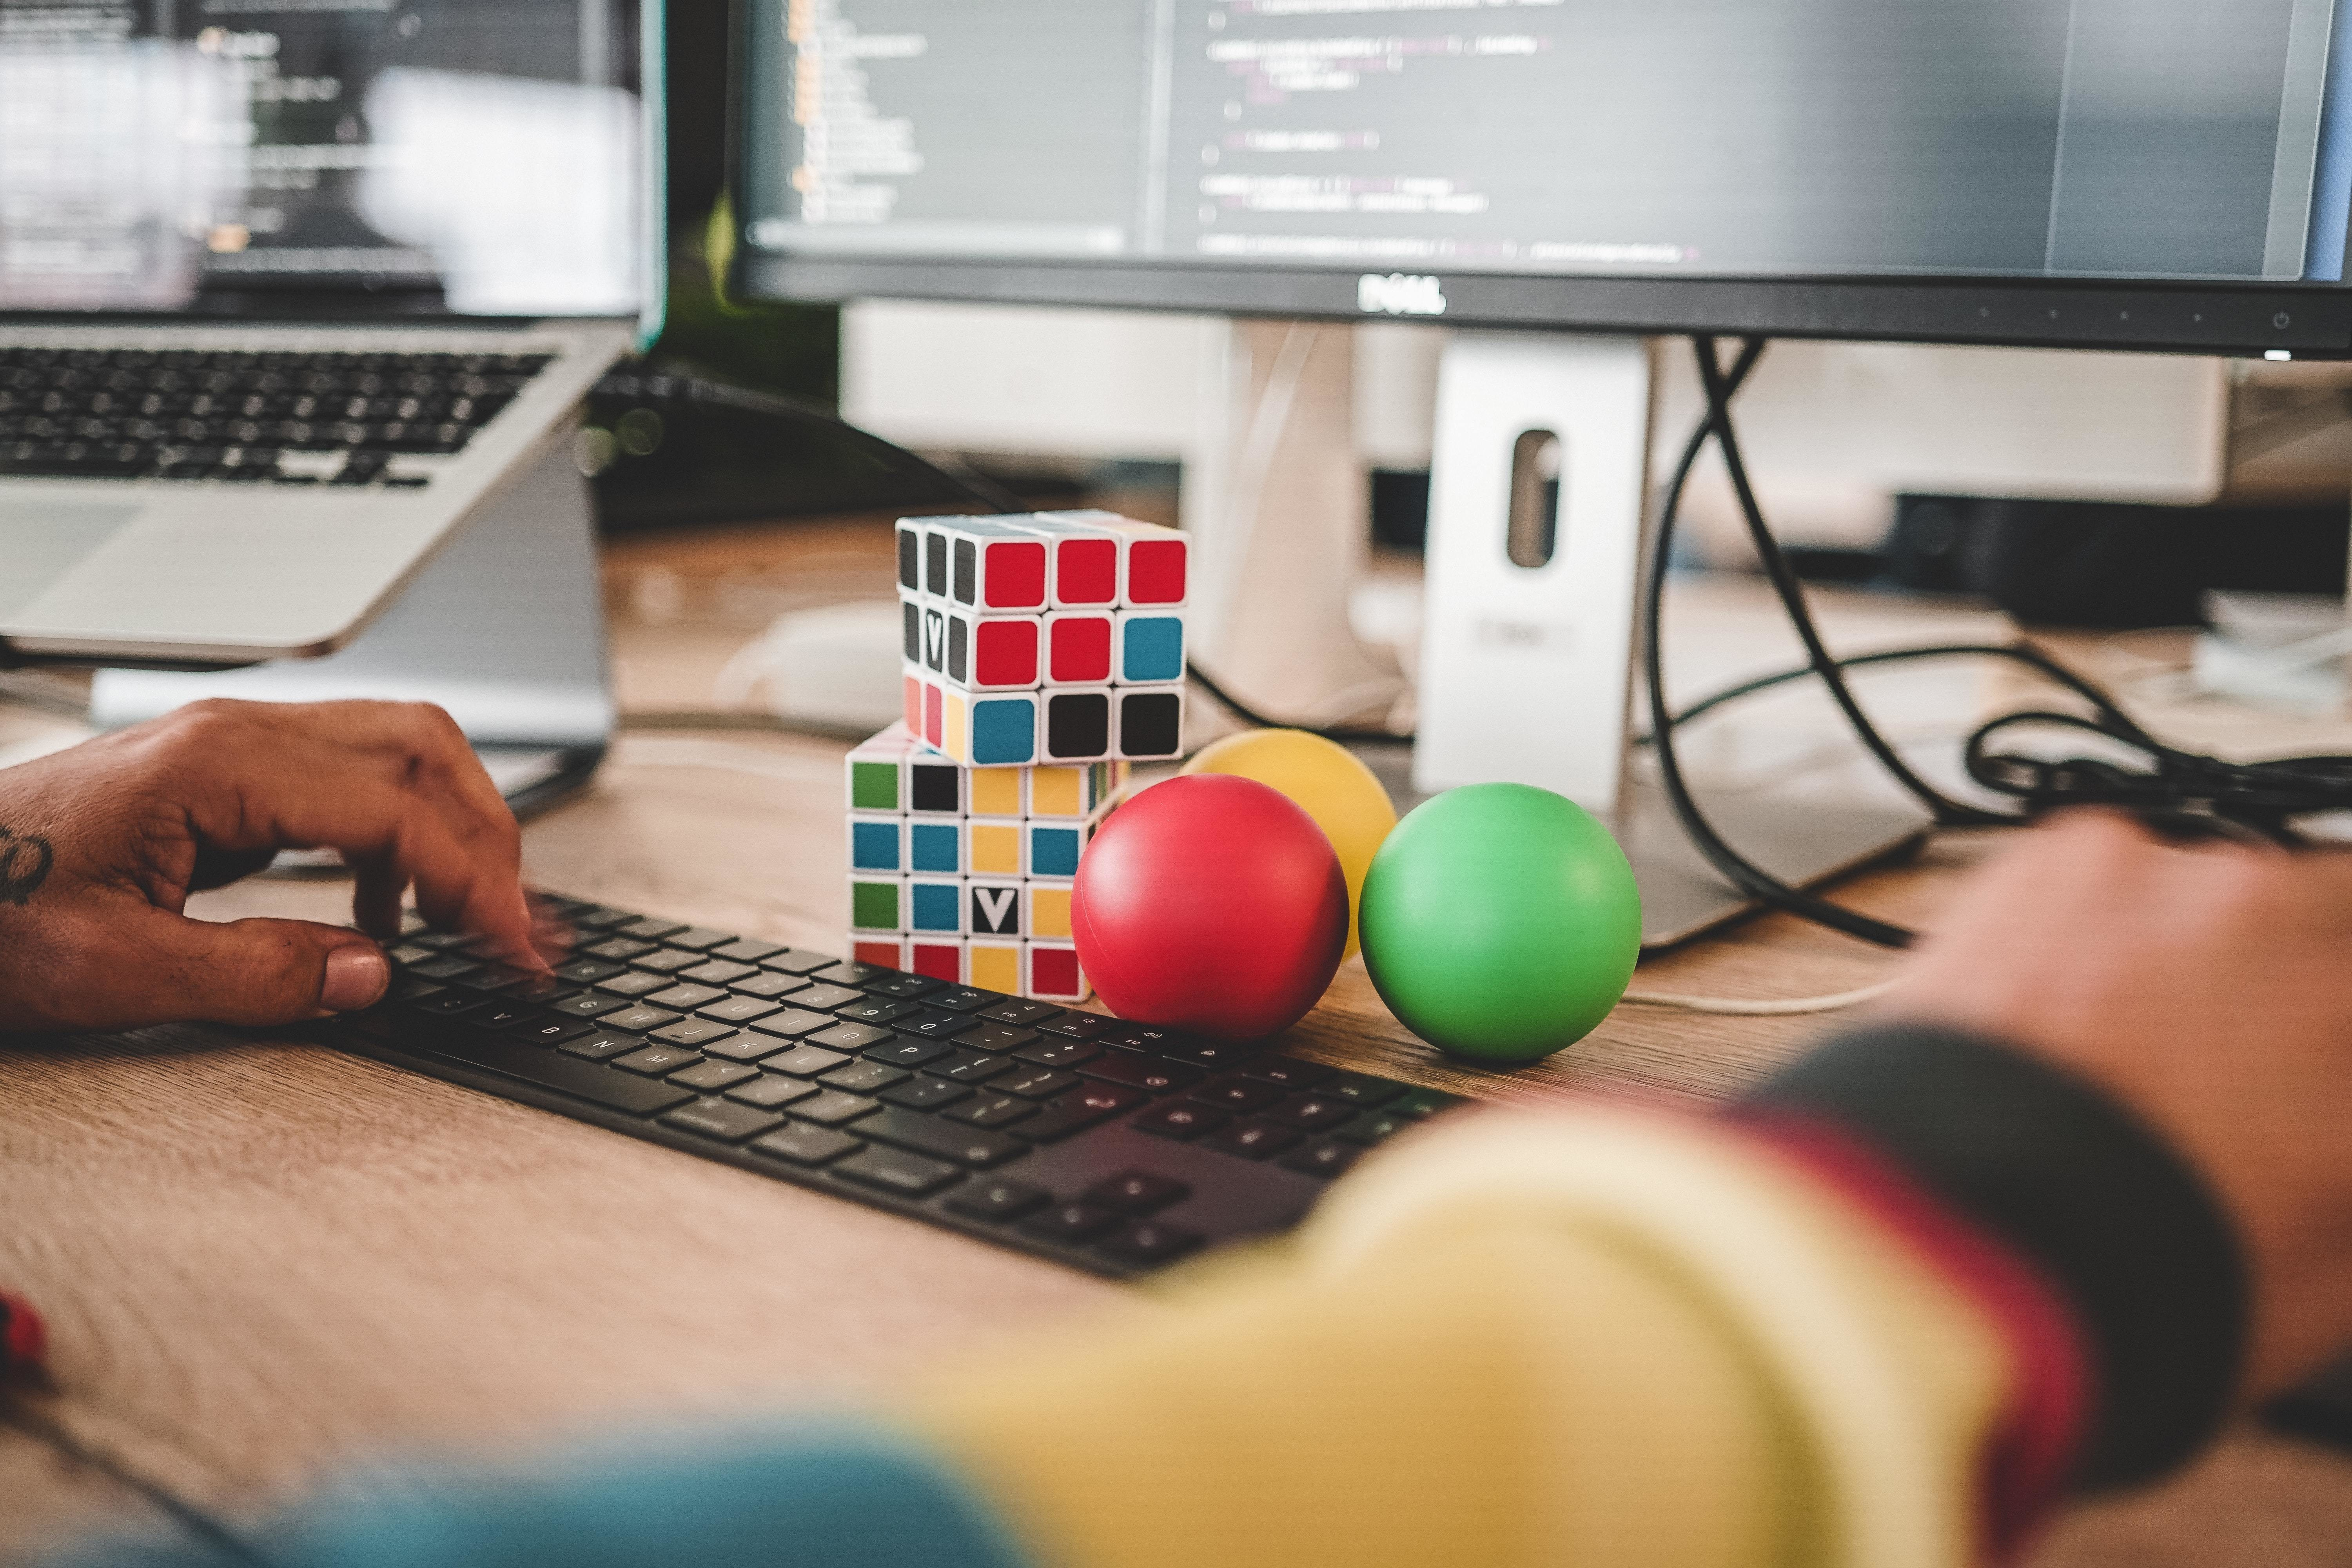 a picture of a desk with a puzzle toy on it